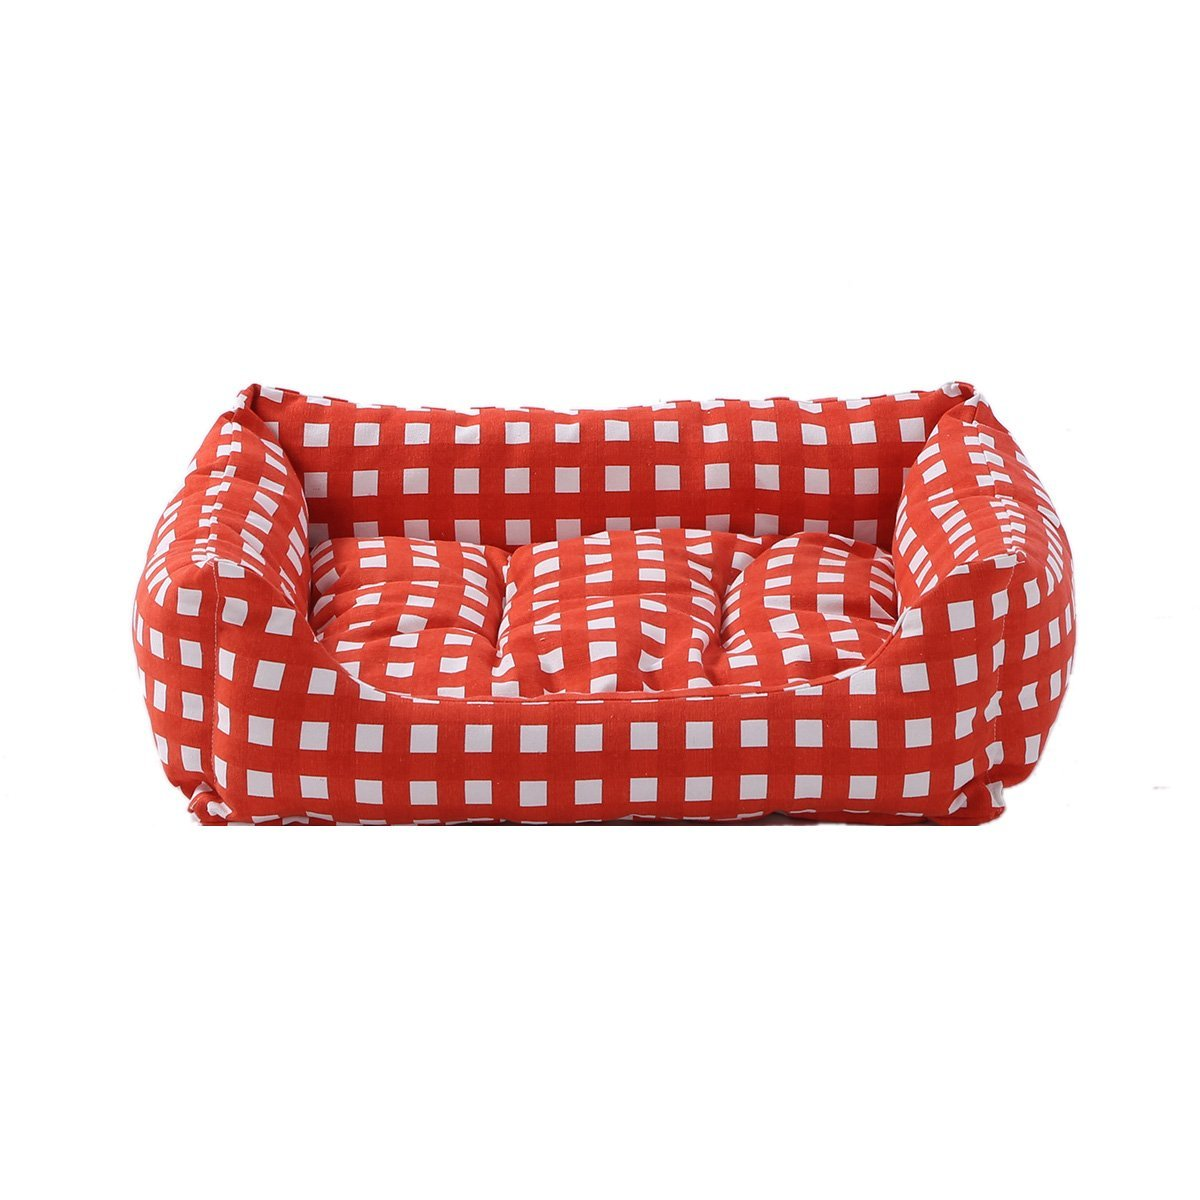 Medium SewForever Durable Pet Cuddle Cushion Dog Sleeping Bed Cat Sleeping Bed with Removable Pad, Red Checked, Medium